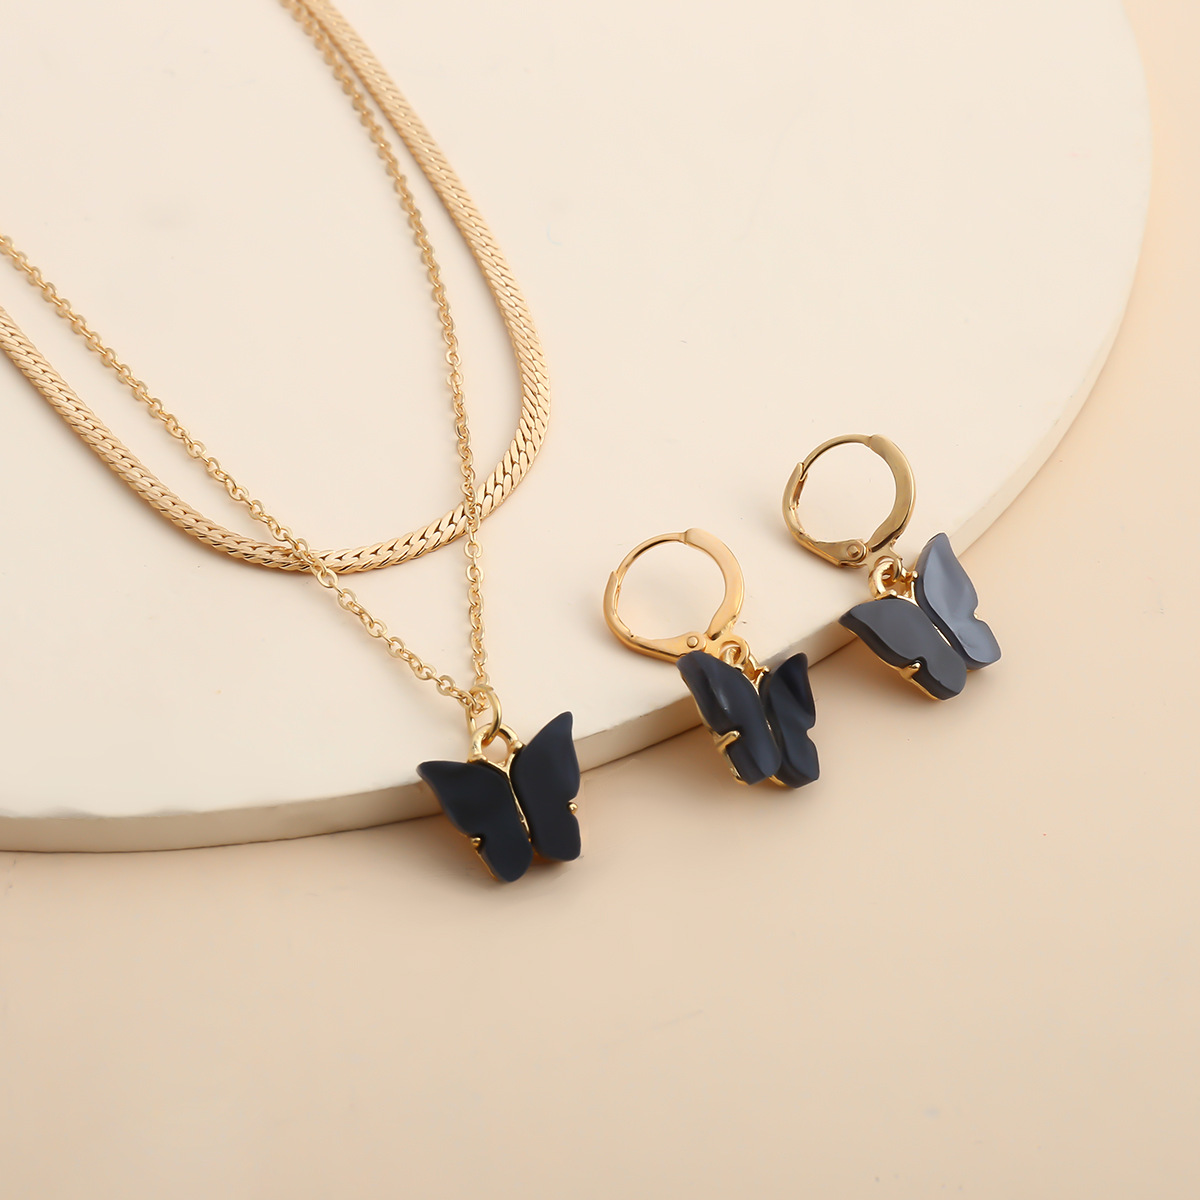 Fashion jewelry design sense geometry necklace temperament color small butterfly wild short necklace NHXR217203